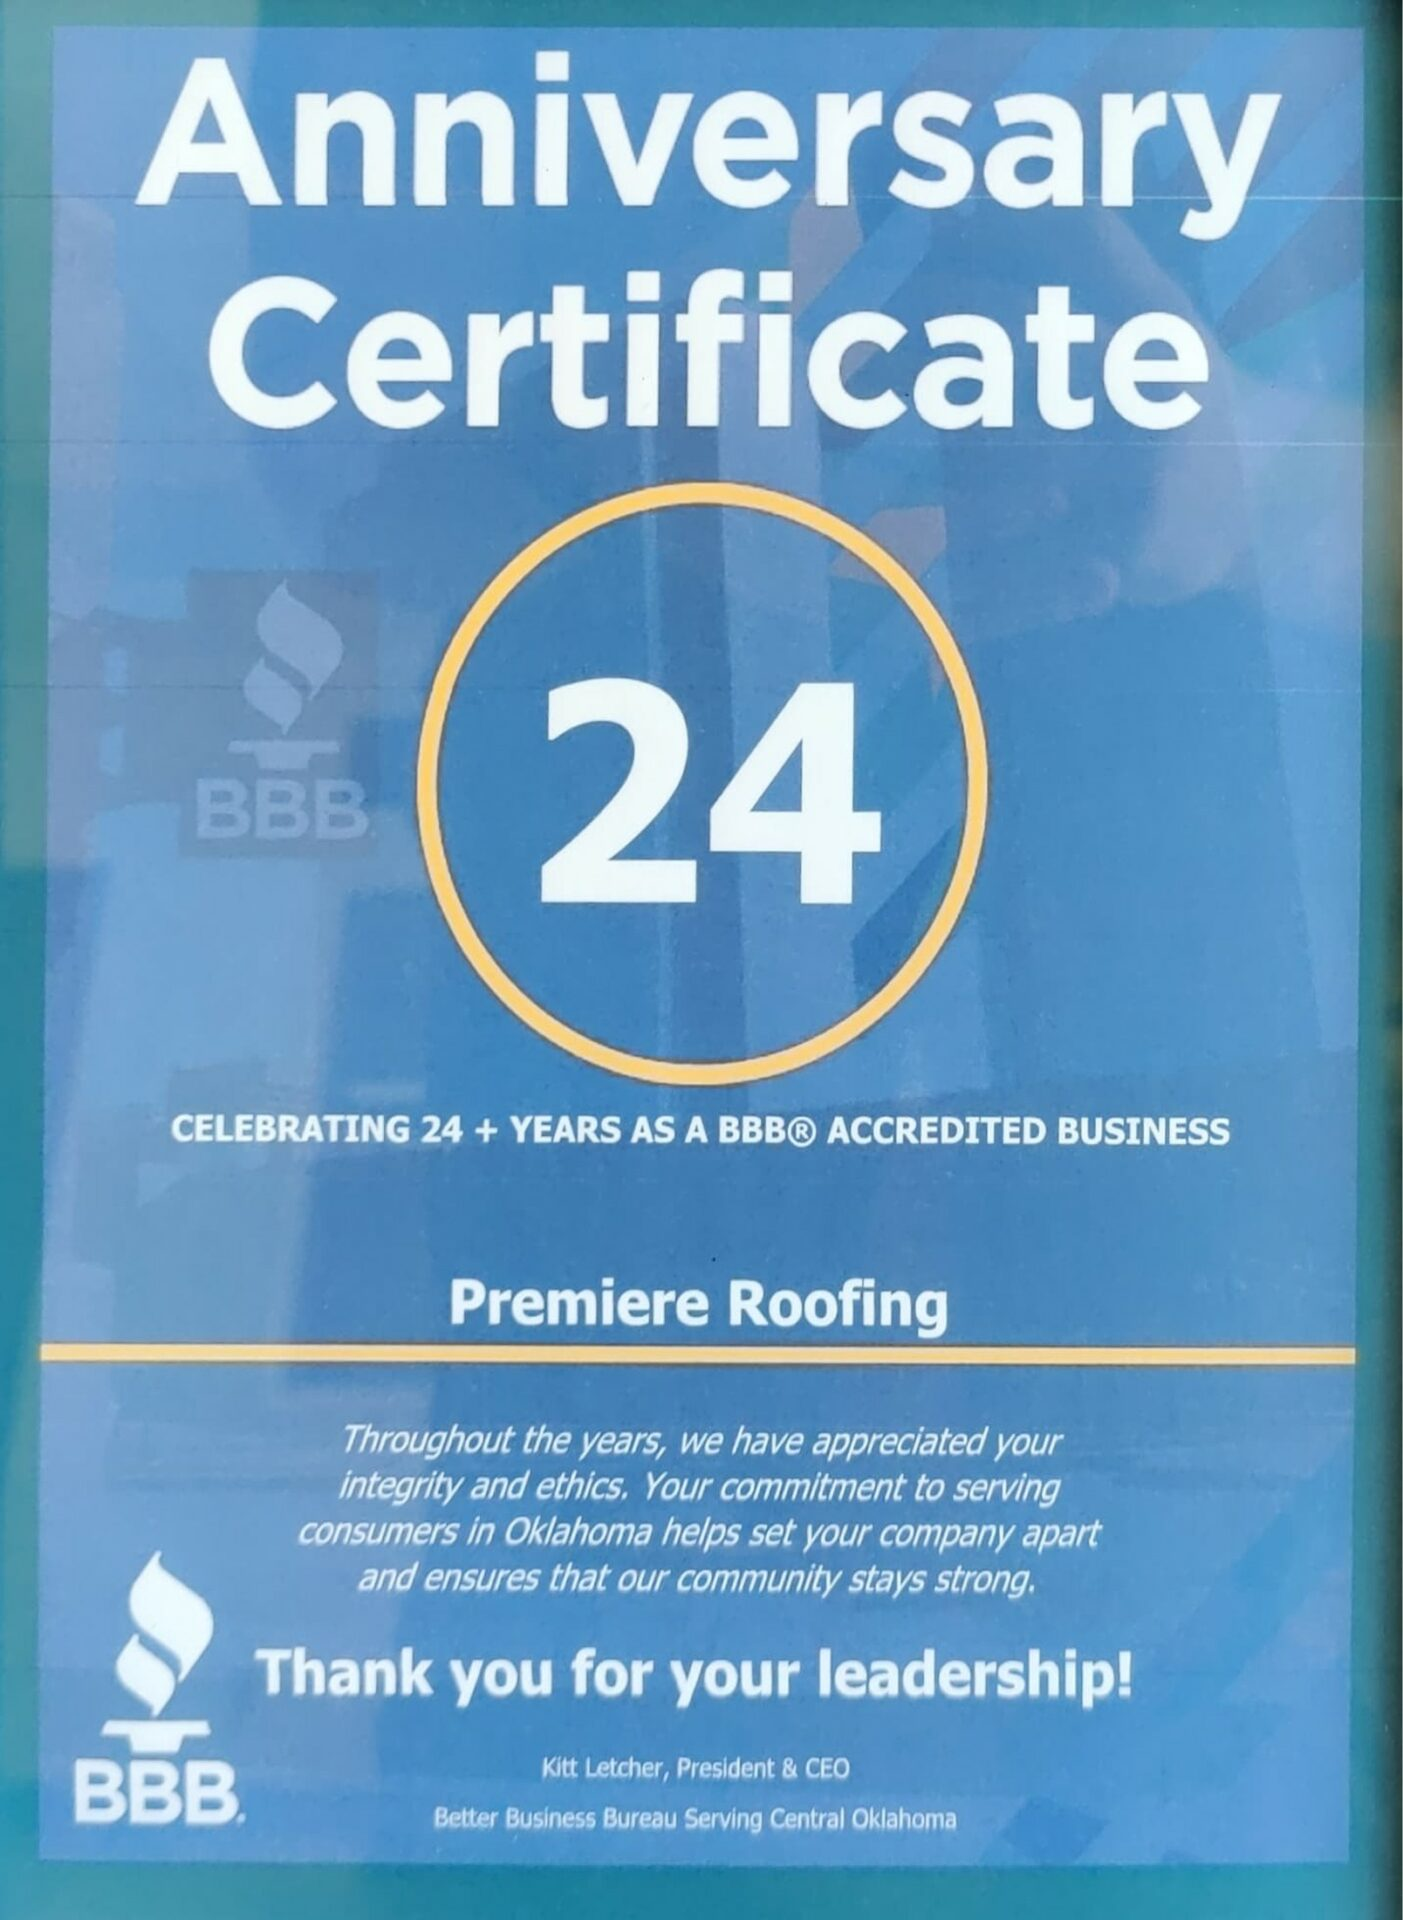 BBB 24 Year Anniversary Premiere Roofing